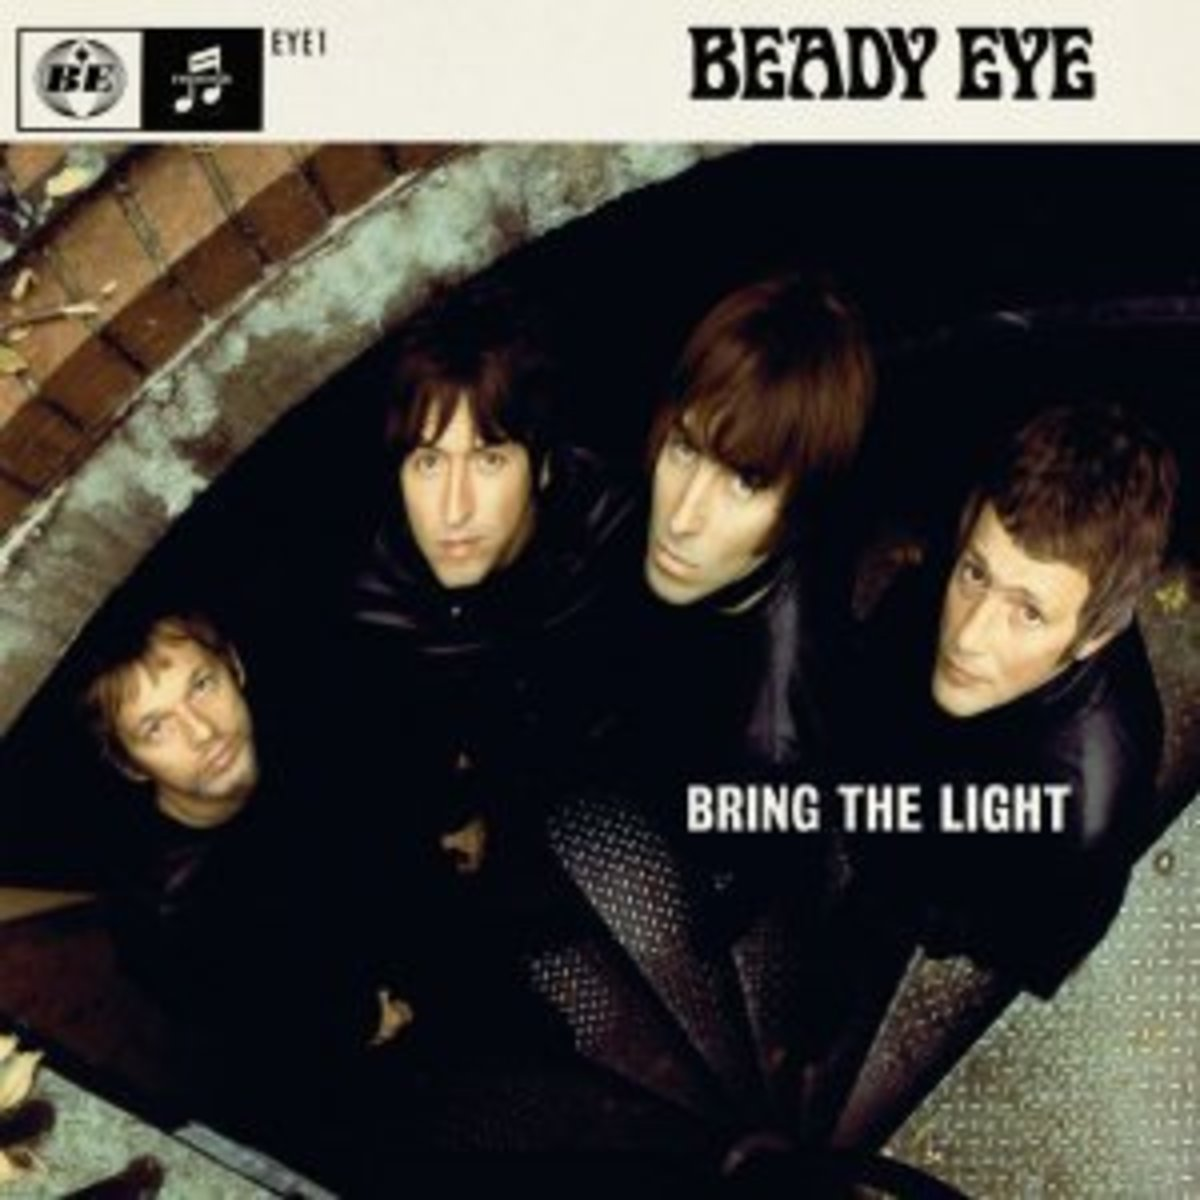 """Liam Gallagher's new band Beady Eye have made their first release """"Bring The Light"""" available as a free download."""